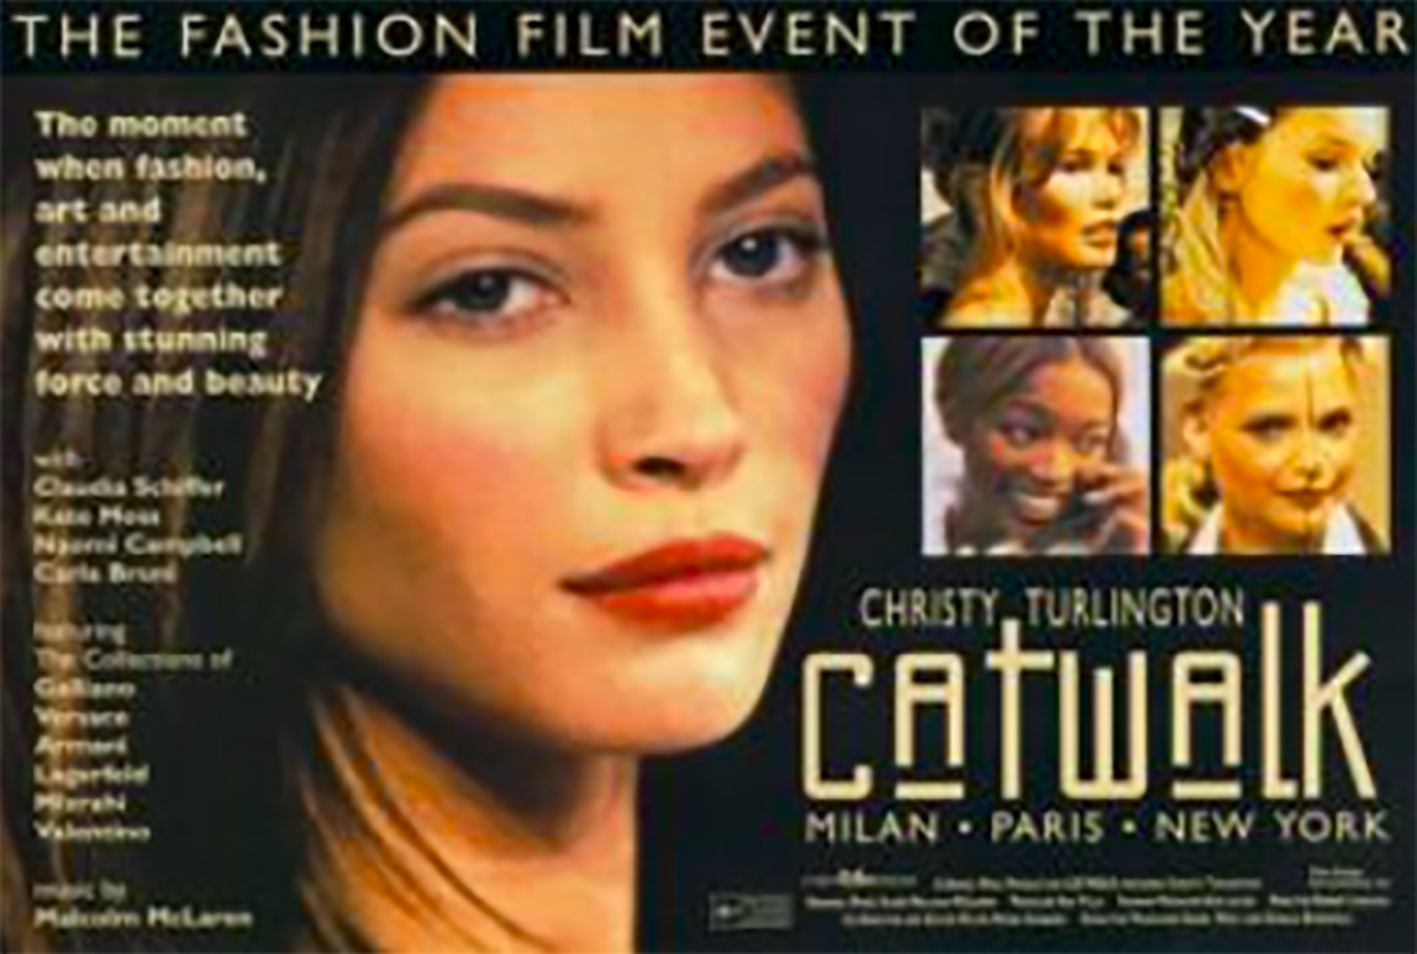 - Catwalk (1995)Catwalk observes the day to day life of  model,  Christy Turlington working in Milan, Paris and New York.  This is when the modeling industry started changing and diversity on the runways started to develop. Turlington's mother is from El Salvador.